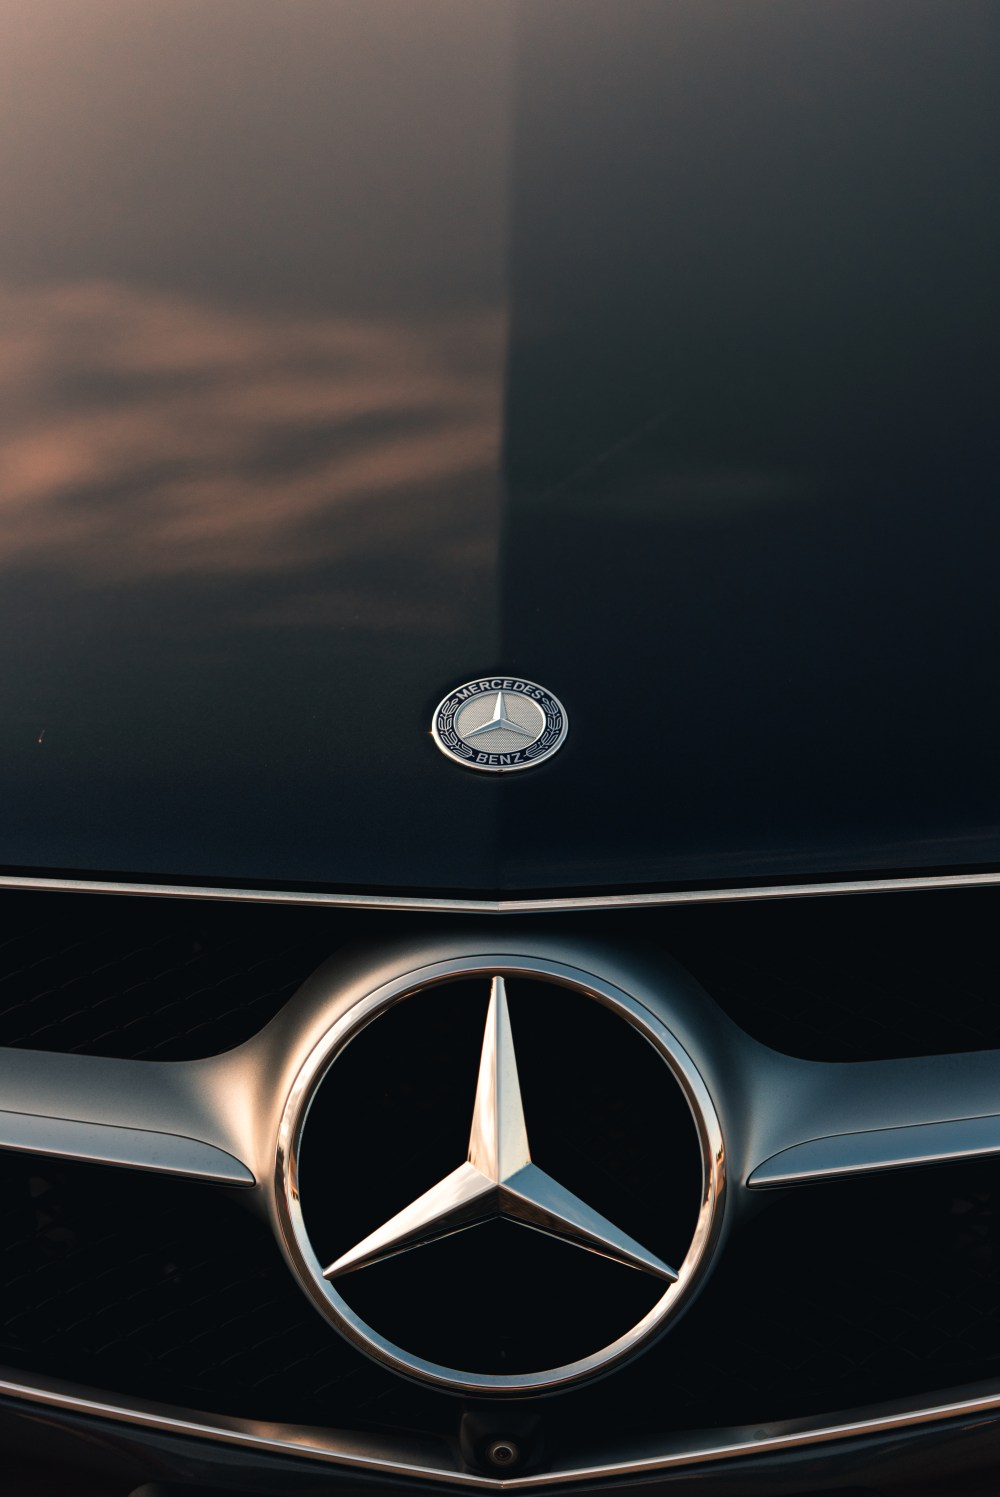 Ed grabianowski in addition to the fortwo variet. 500 Mercedes Pictures Download Free Images On Unsplash